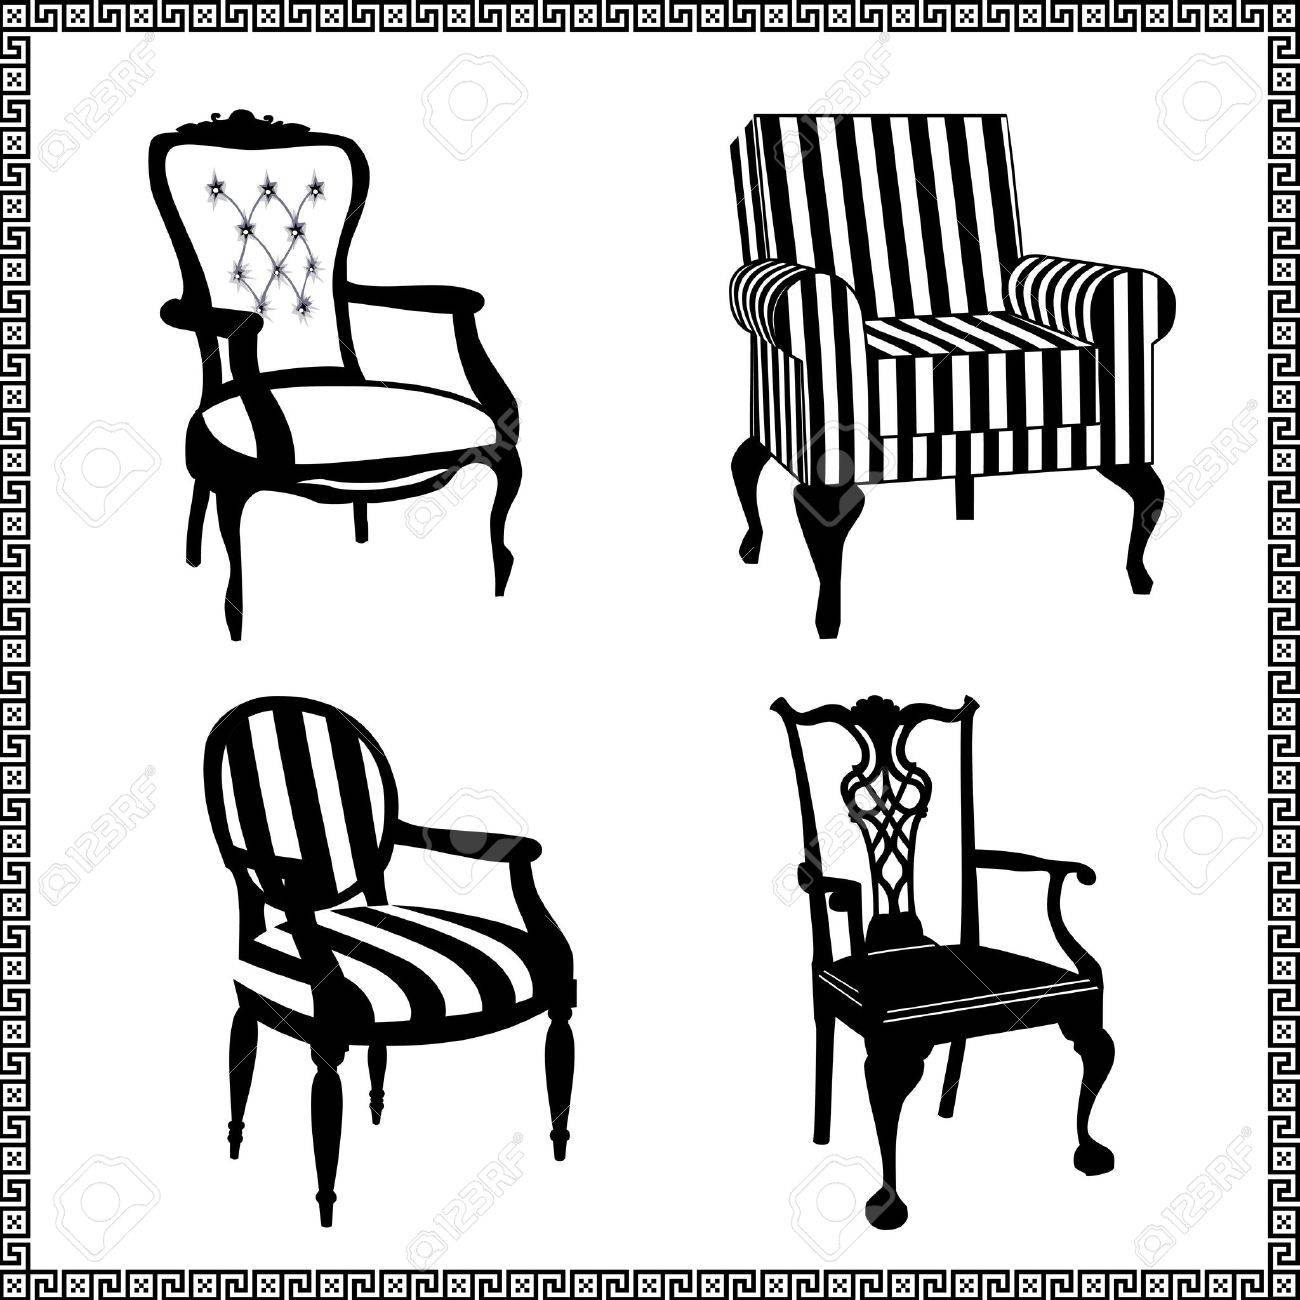 Set of antique chairs silhouettes - 9718251